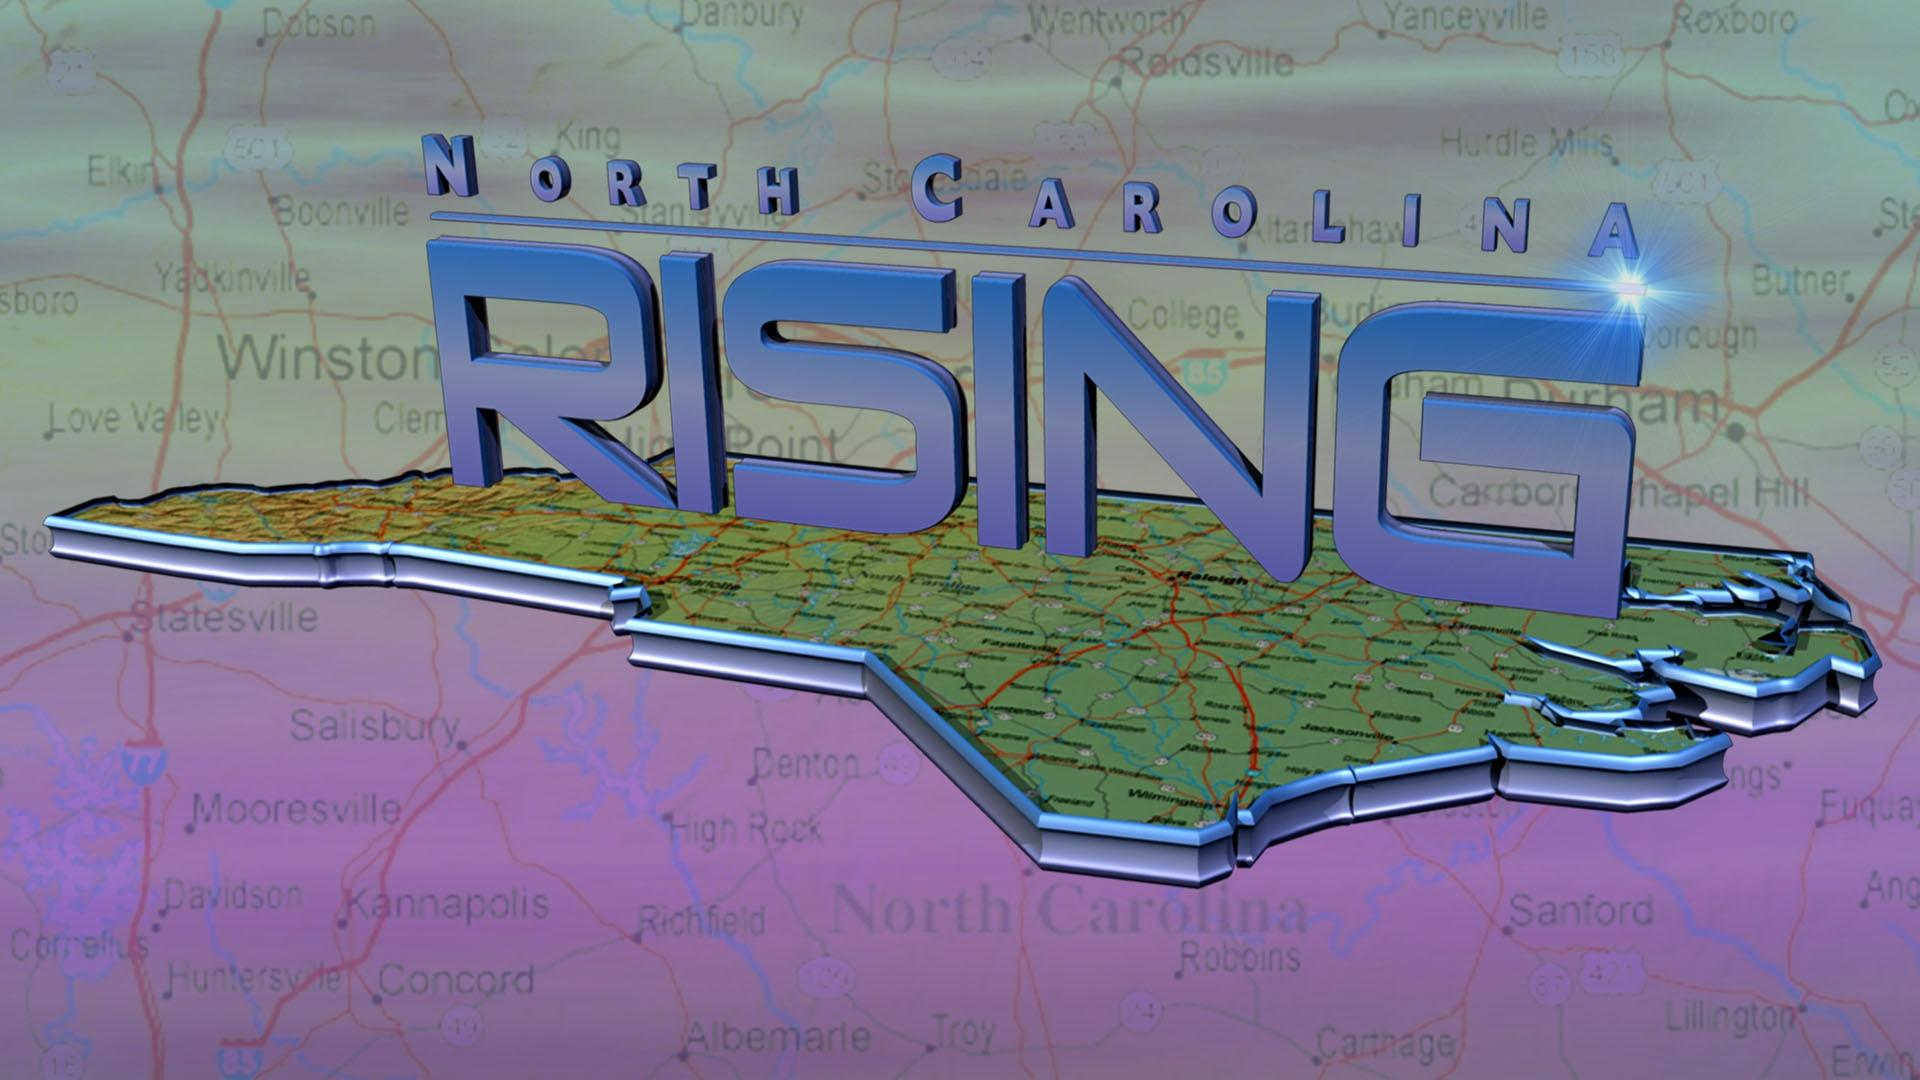 NORTH CAROLINA RISING